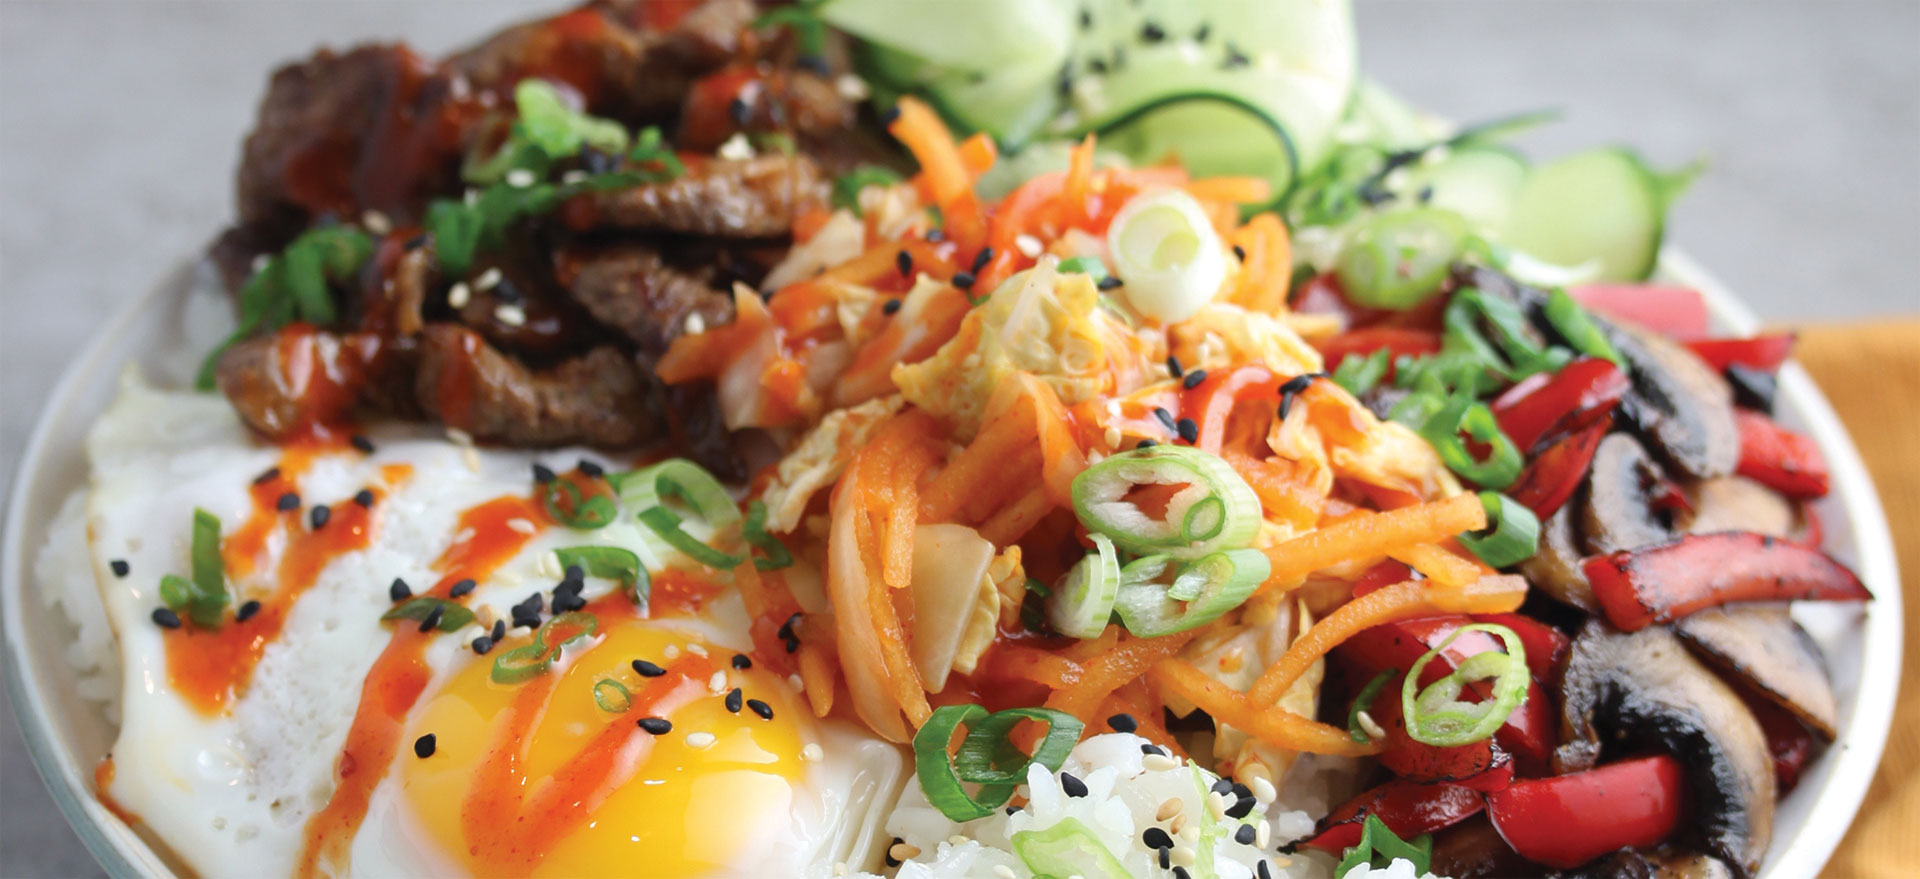 Featuring Haliburton Jasmine Rice, Fire Roasted Red Peppers, Fire Roasted Mushrooms, Gochujang Sauce and Kimchi-Style Cabbage